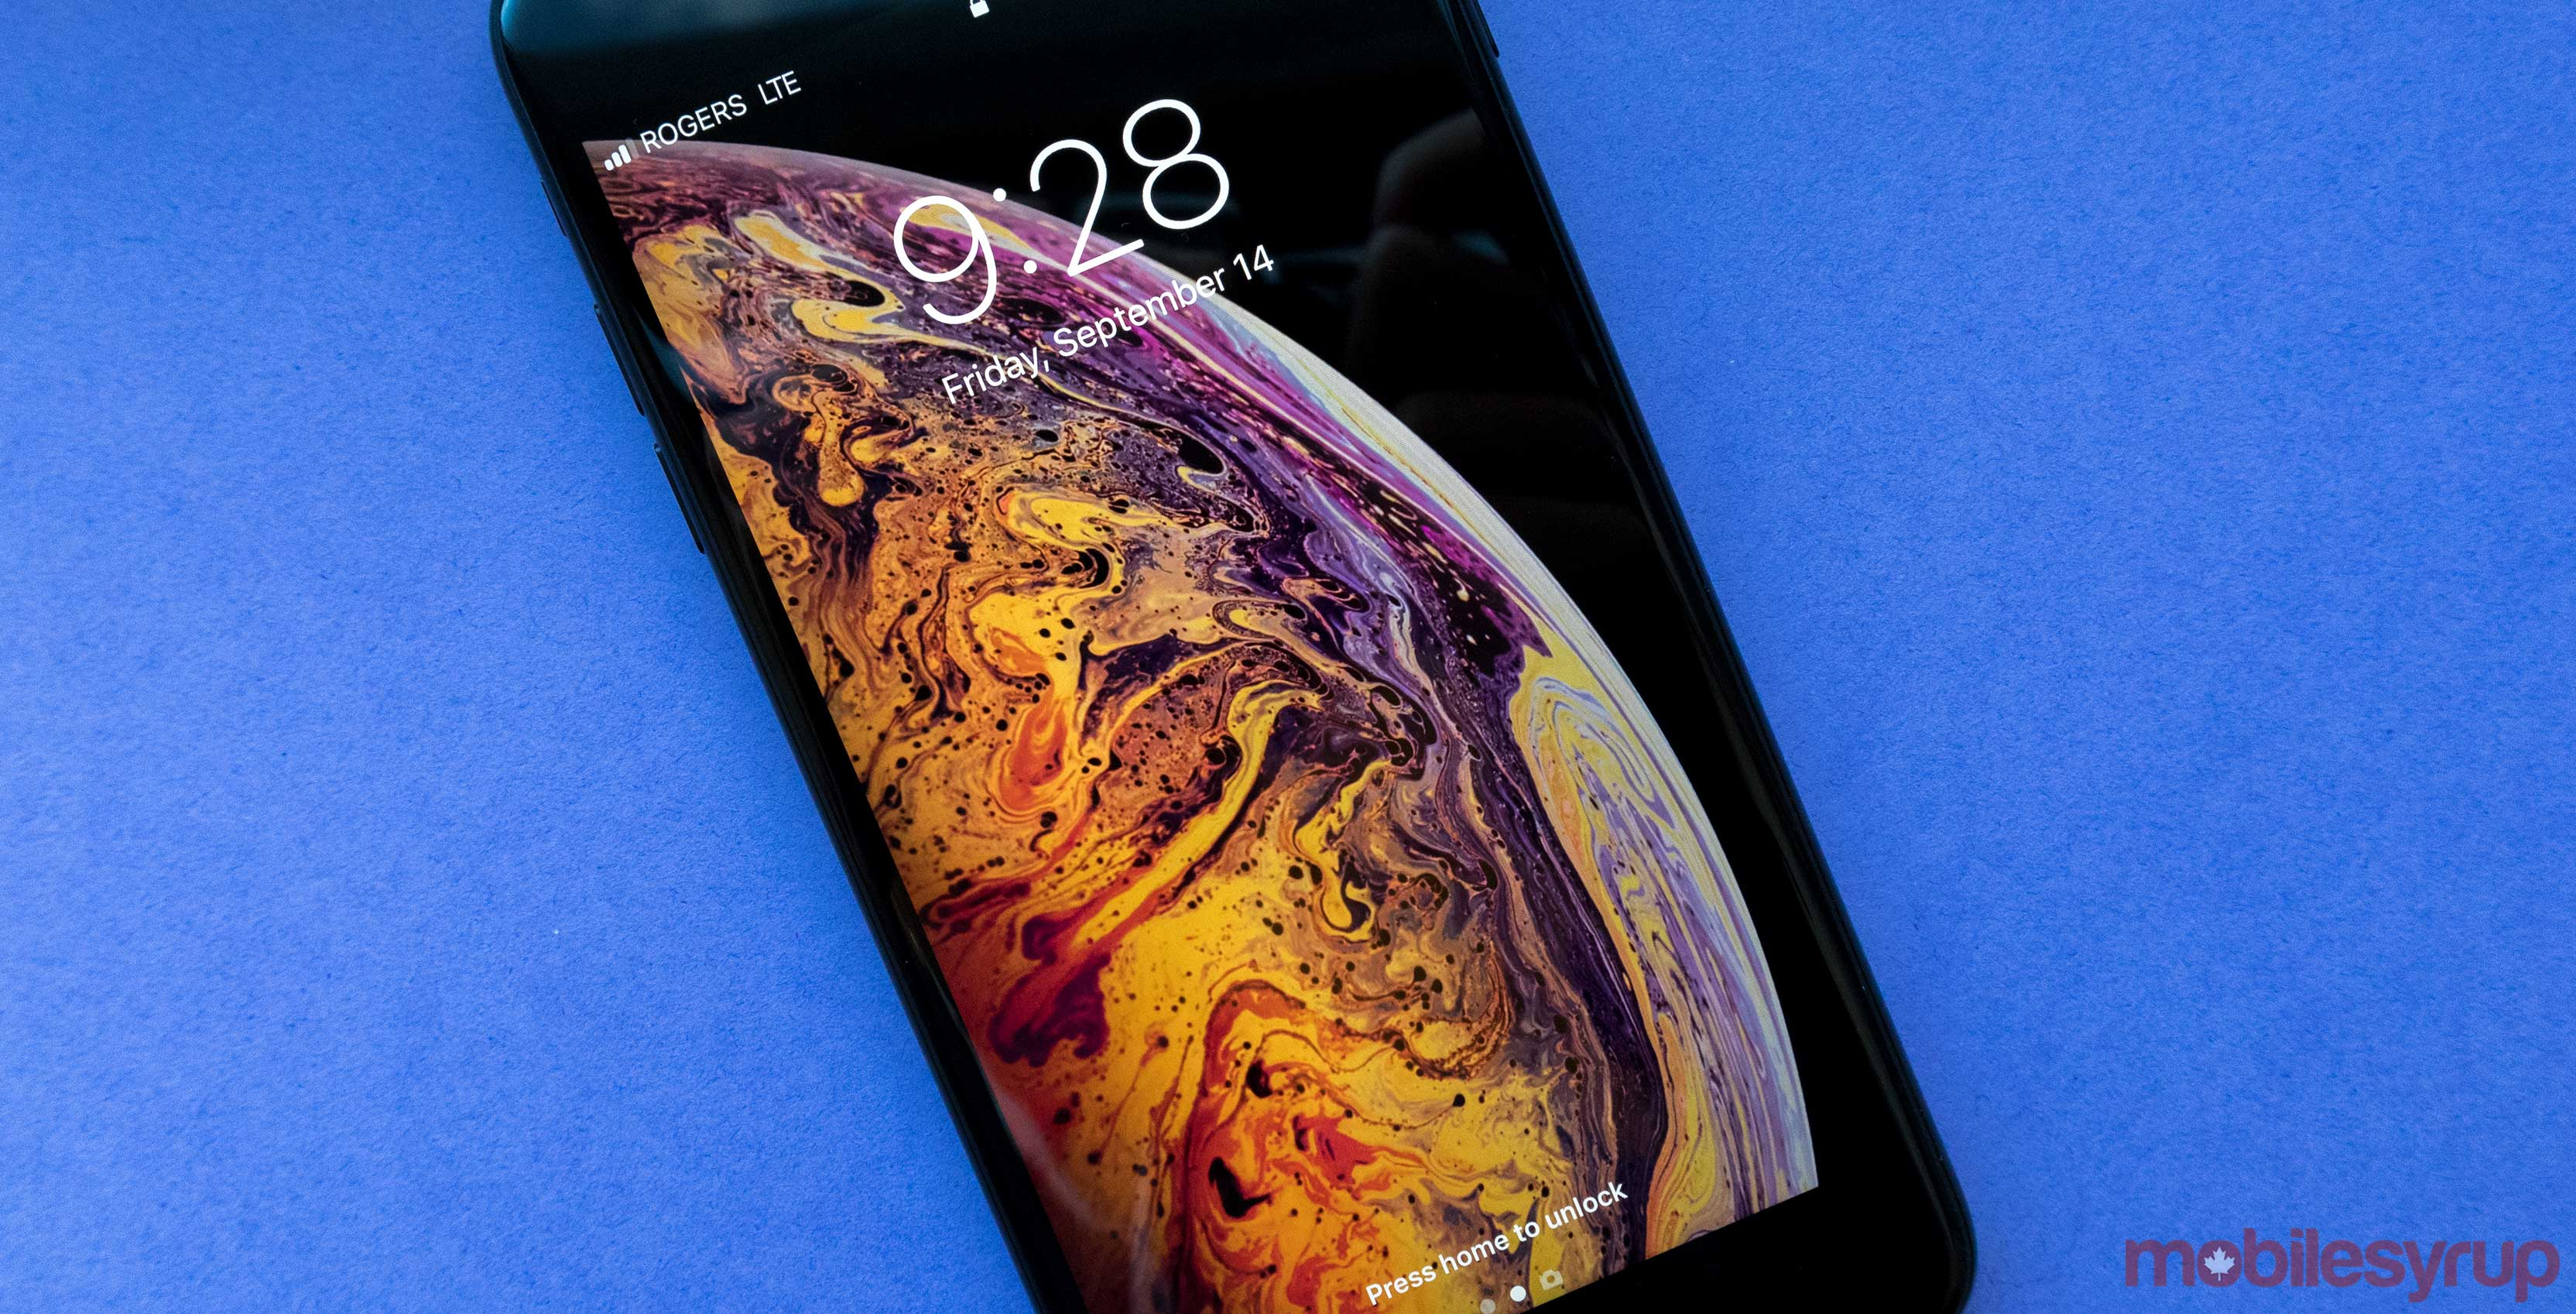 You can download the new iPhone wallpapers now 3328x1698